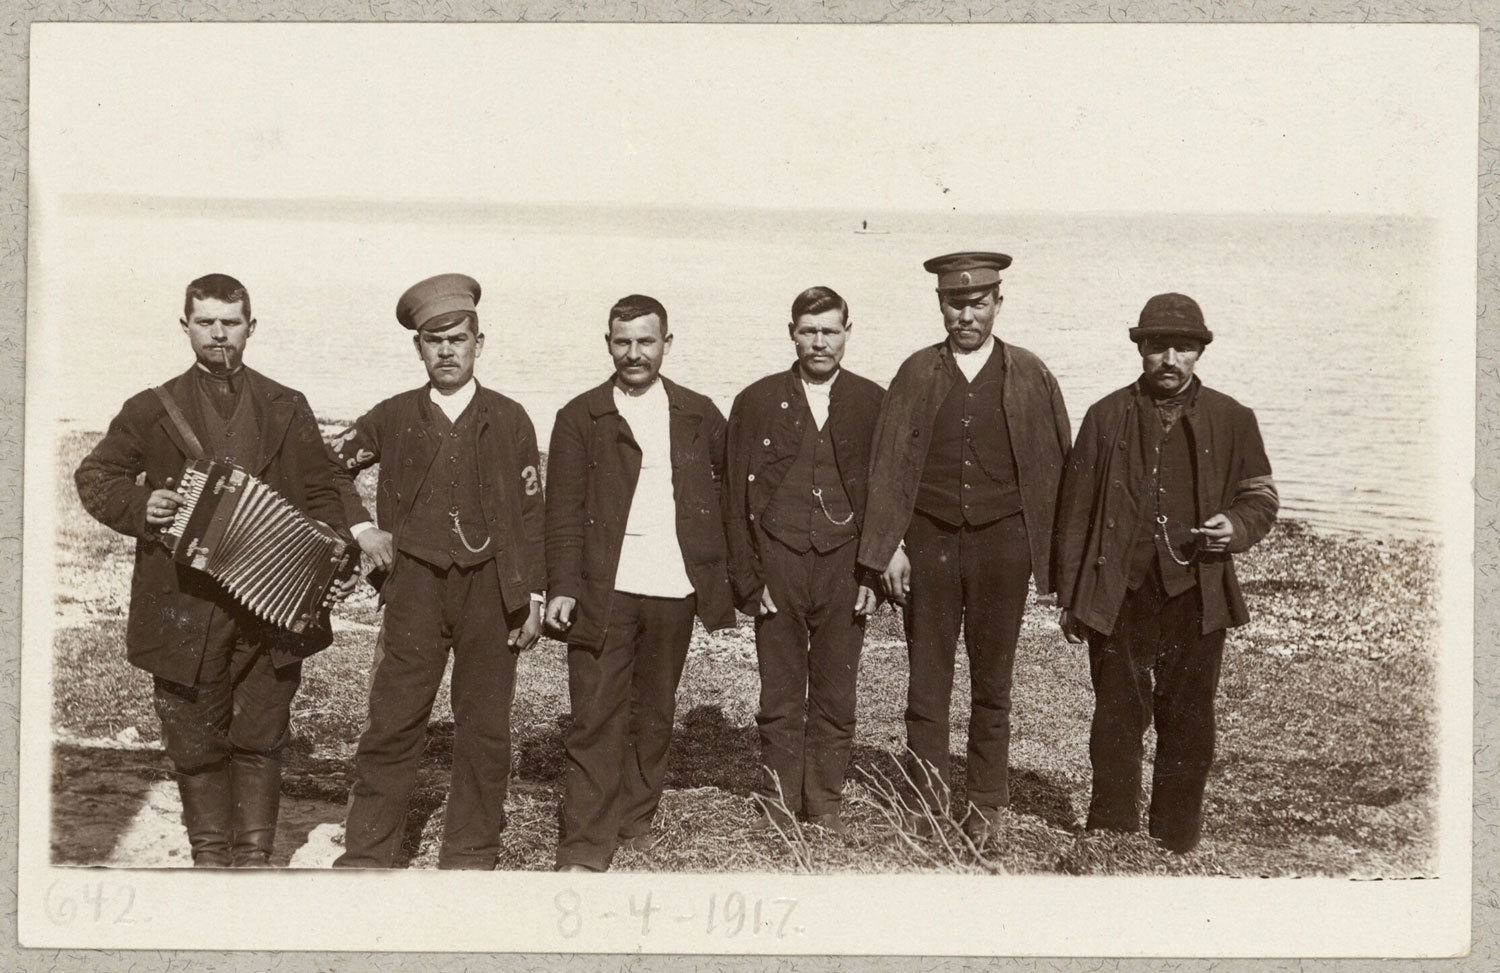 Russiske krigsfanger med harmonika [Russian prisoners of war with harmonica], 1917, unknown photographer, National Library of Denmark, CC BY-NC-ND